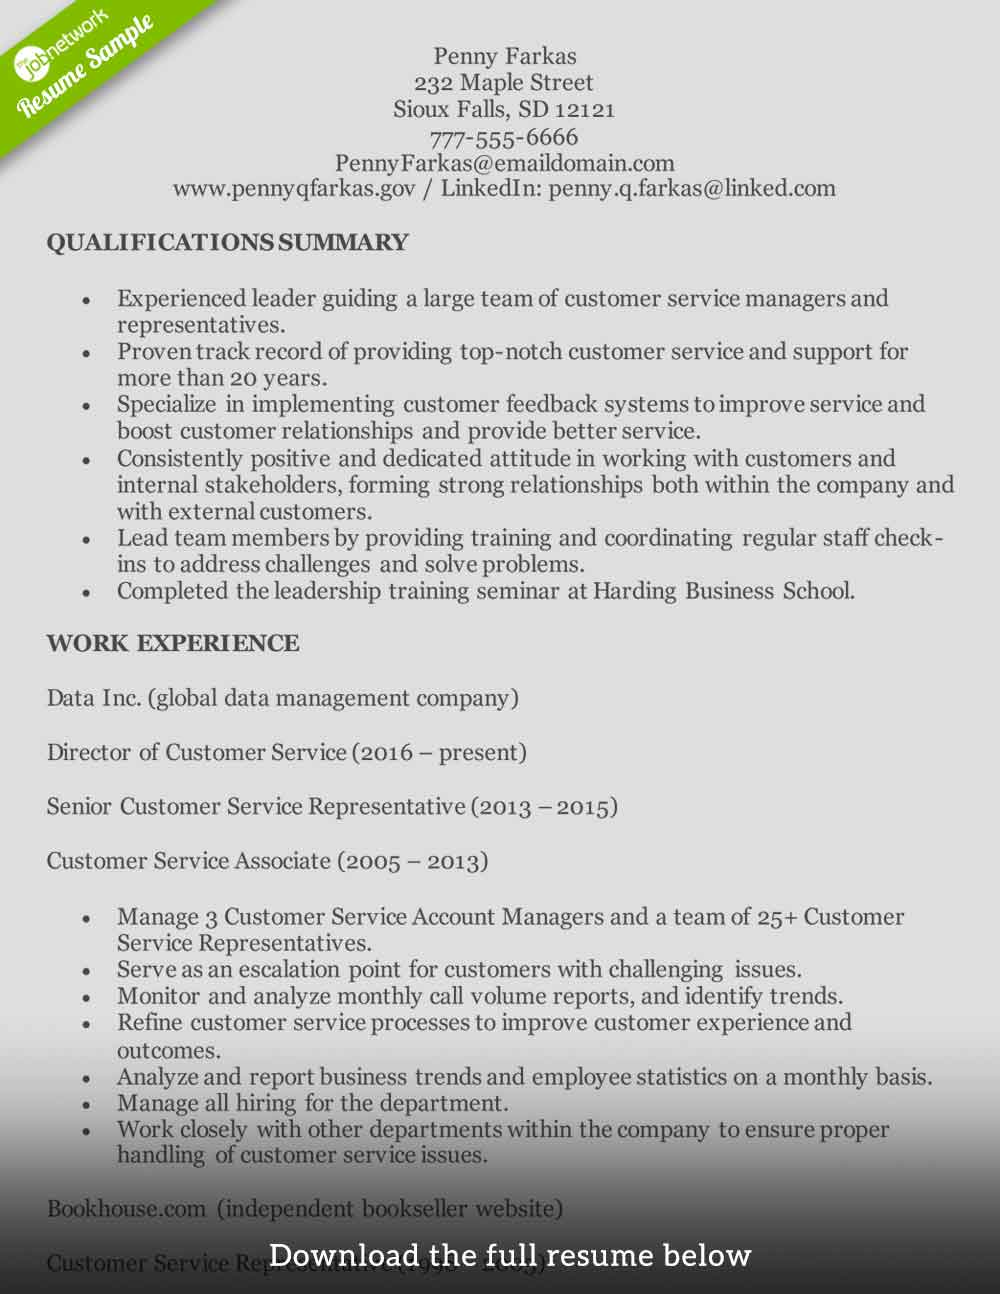 customer service resume to write the perfect one examples good summary for experienced Resume Good Customer Service Summary For Resume